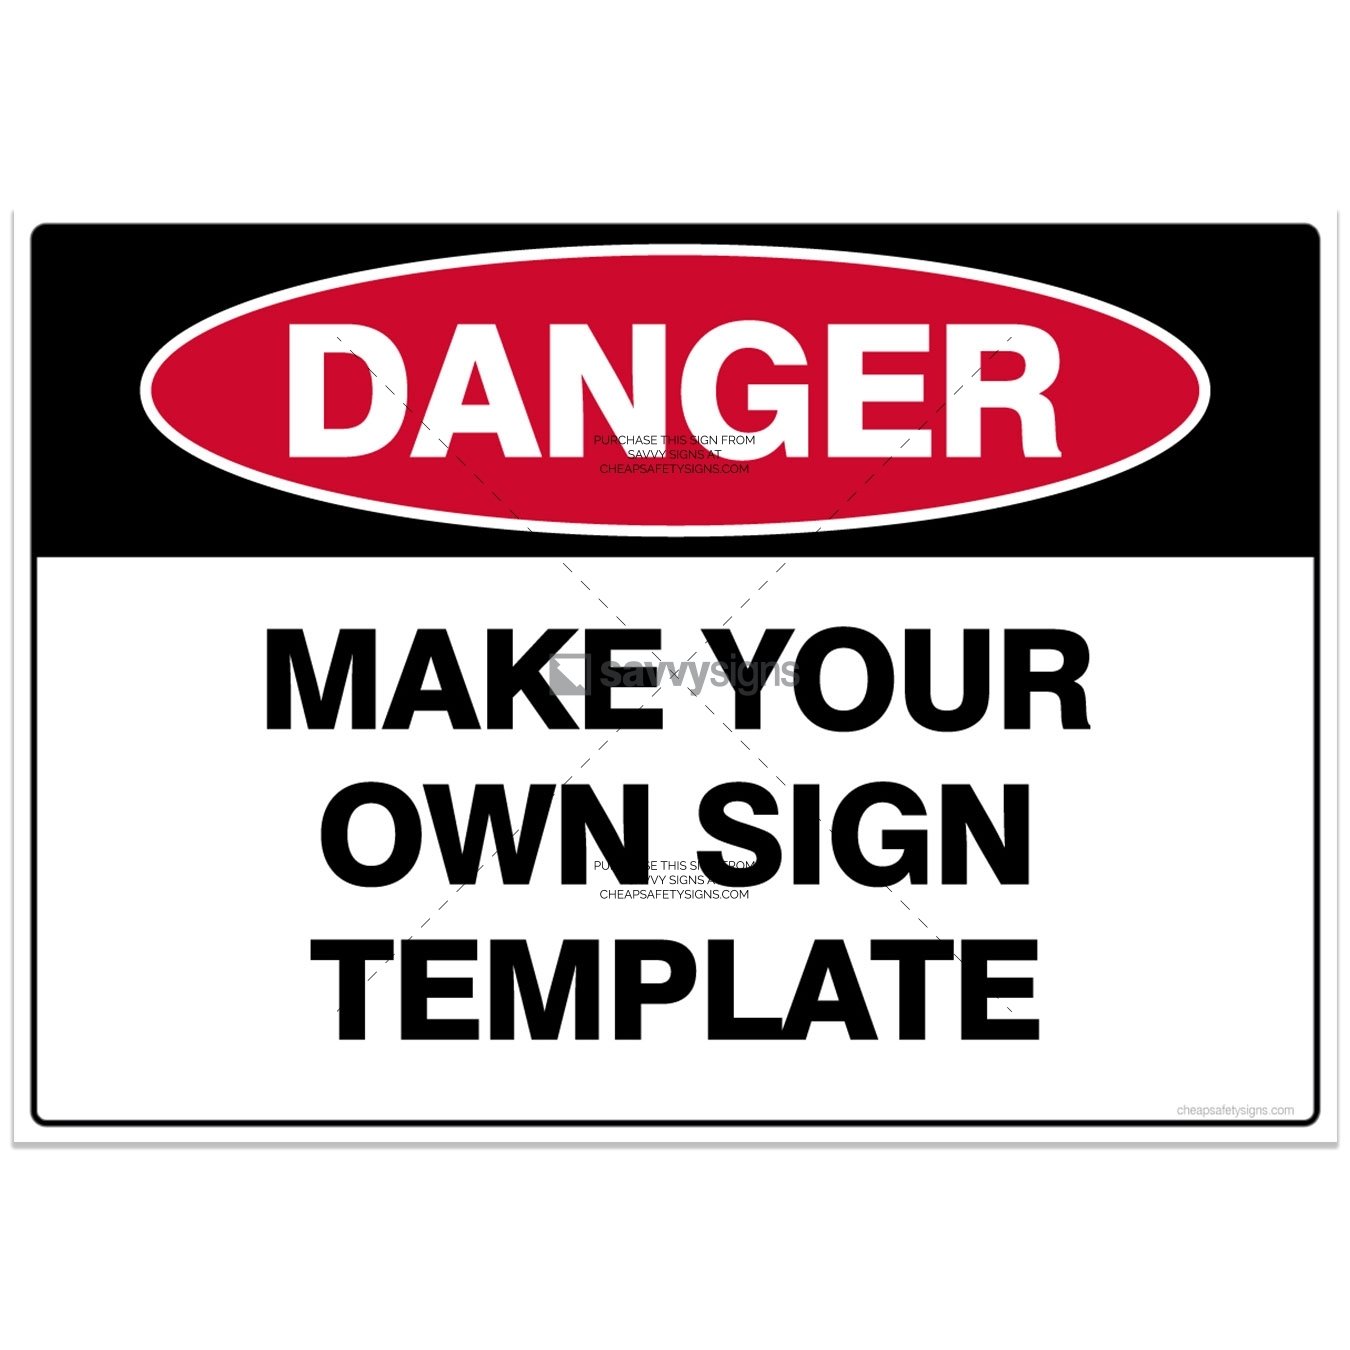 SSDAN3071-DANGER-Workplace-Safety-Signs_Savvy-Signs_v4.1